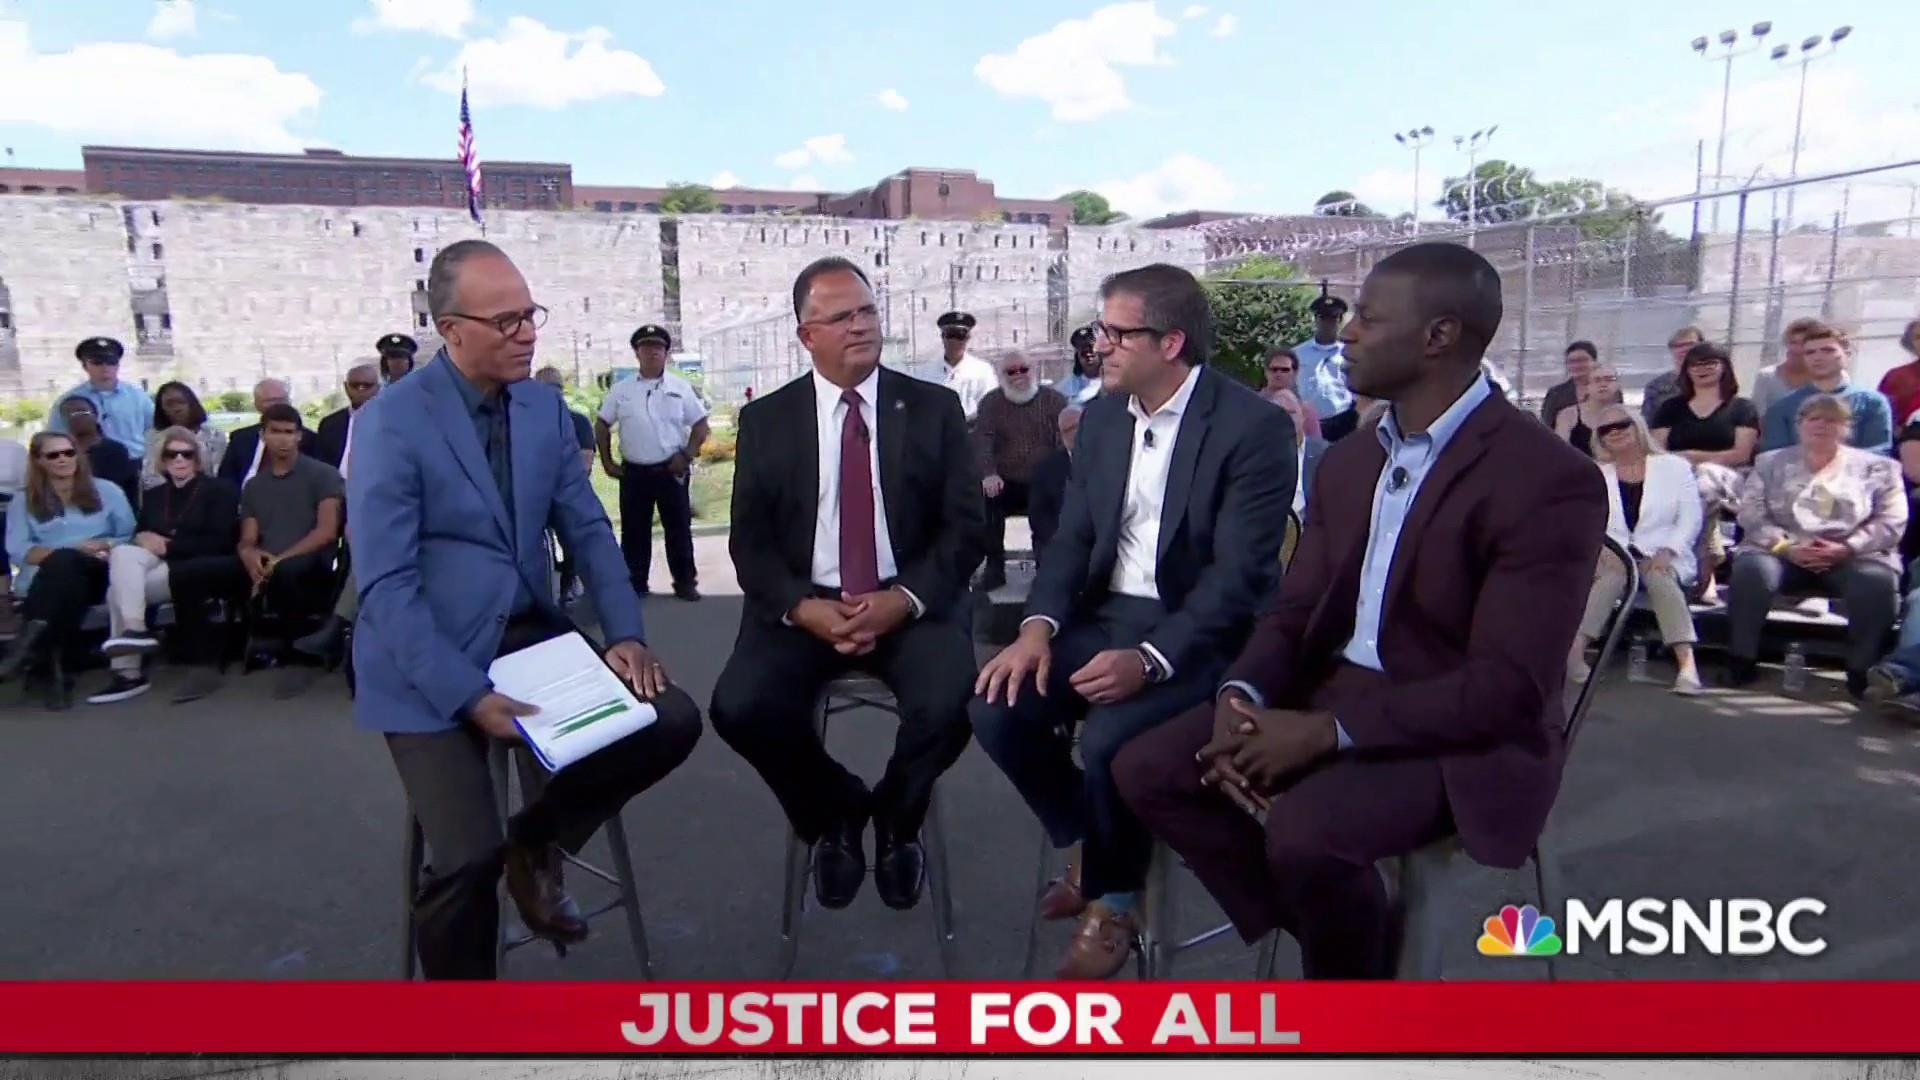 Life after prison: Men released discuss difficulties finding work, housing